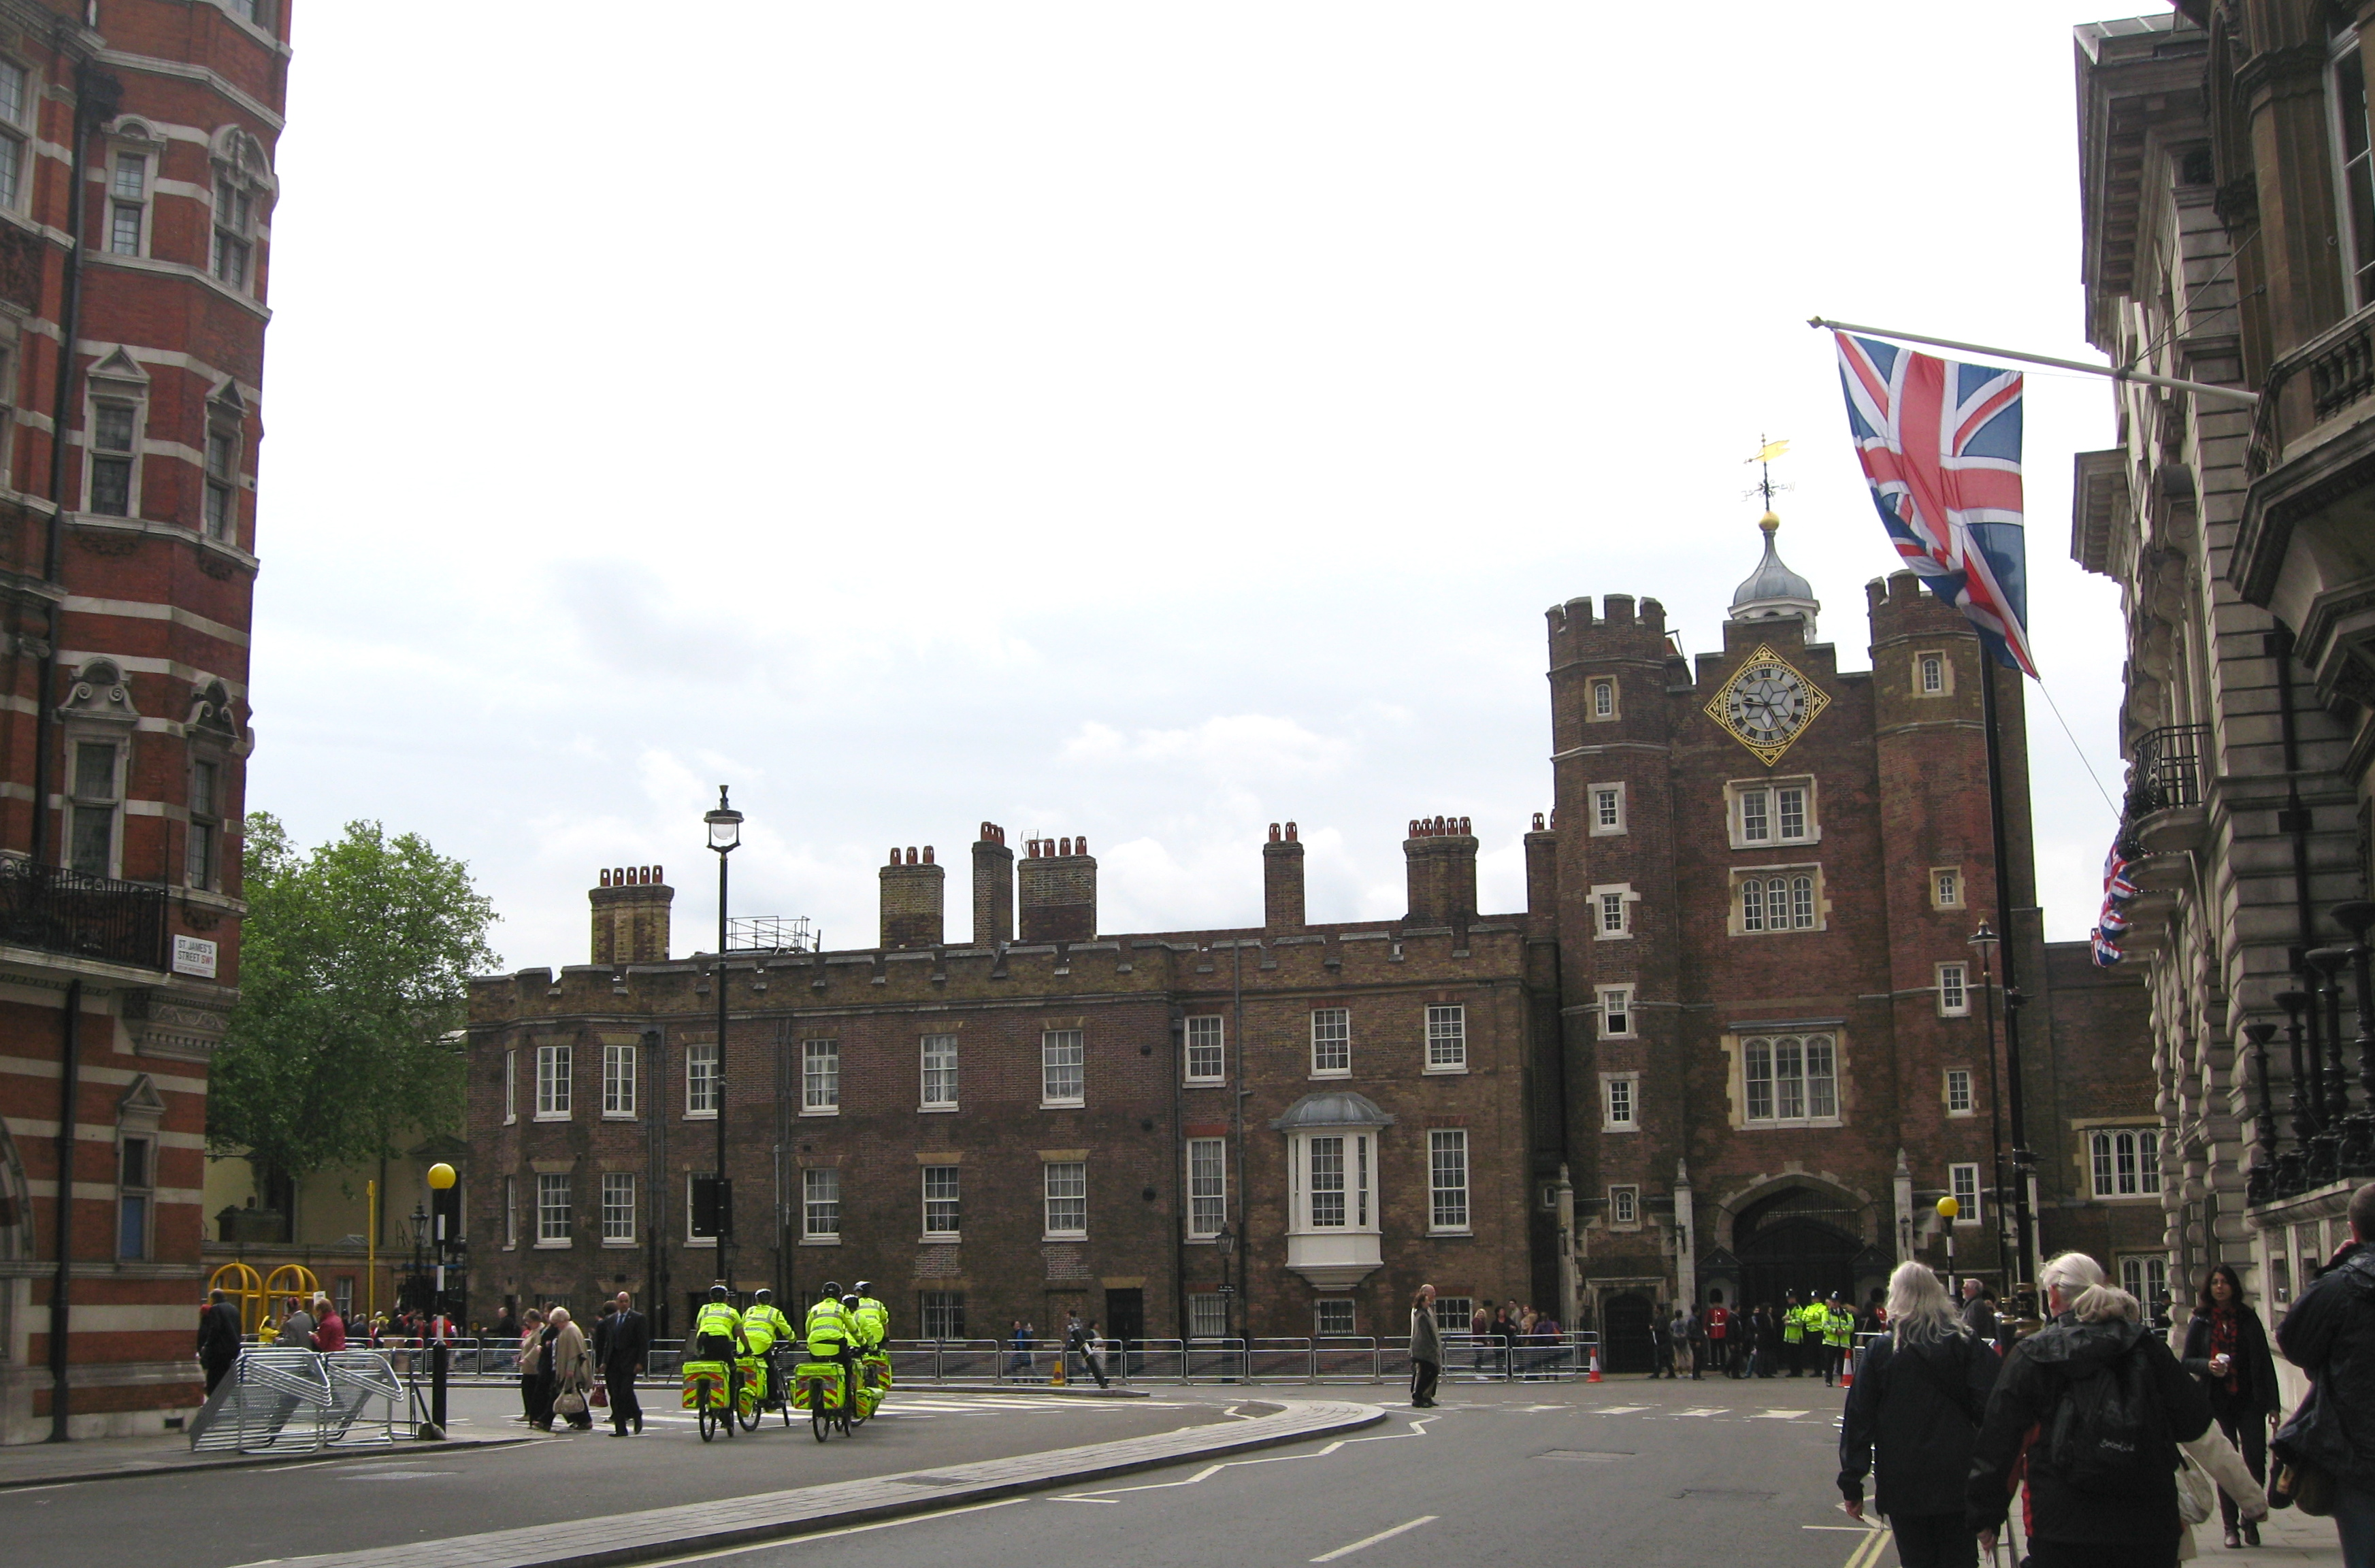 St James's Palace during Jubilee Week. Photo by me.